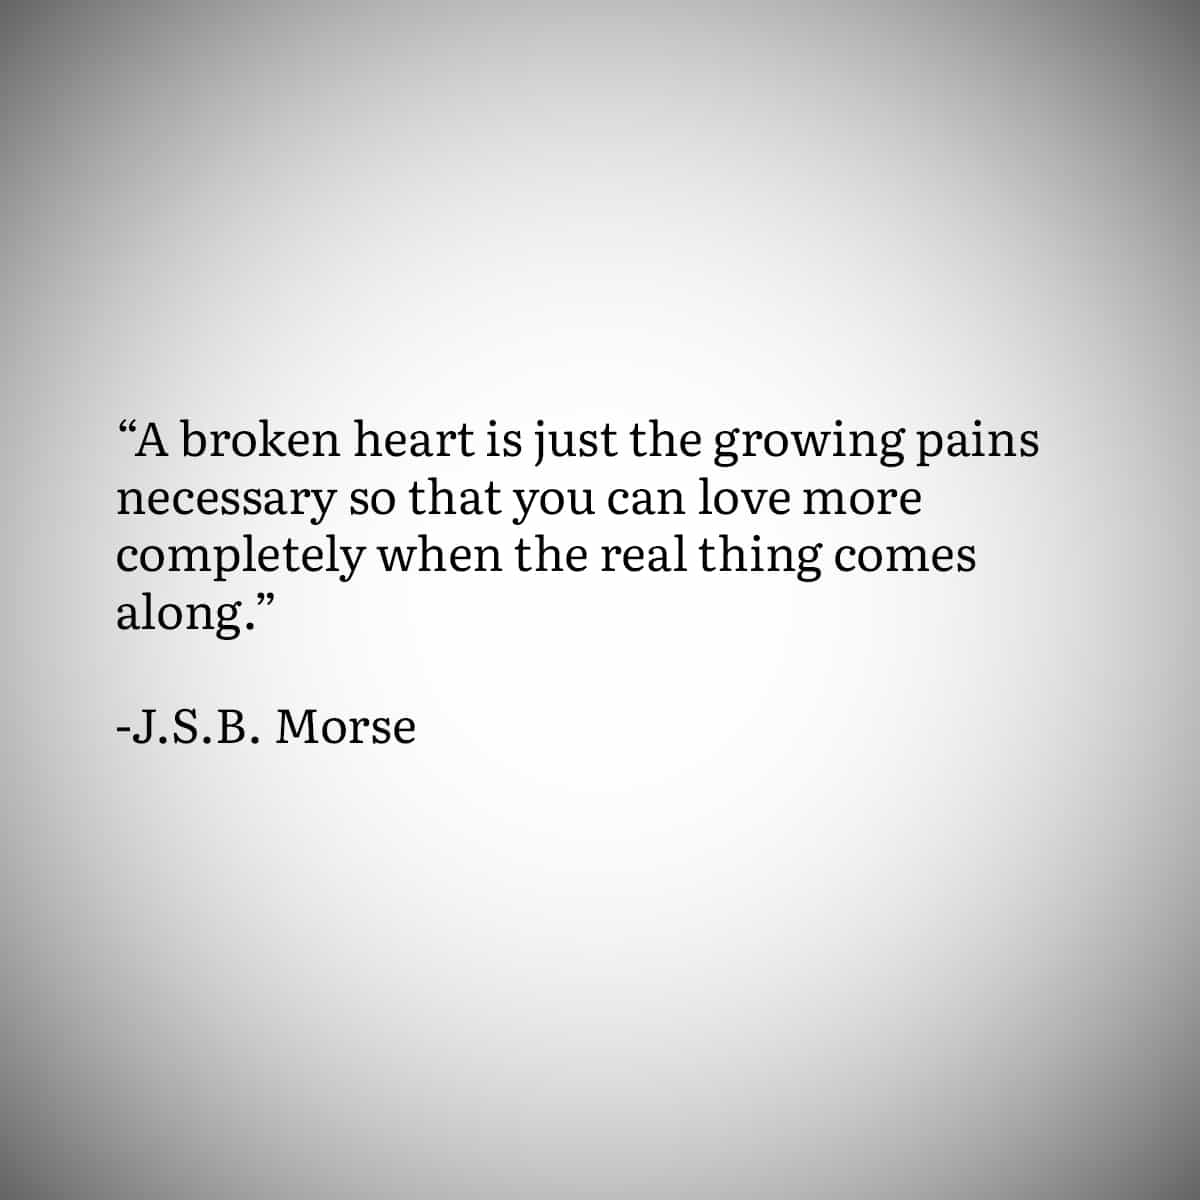 """Broken Heart Quote 2: """"A broken heart is just the growing pains necessary so that you can love more completely when the real thing comes along."""" by JSB Morse"""